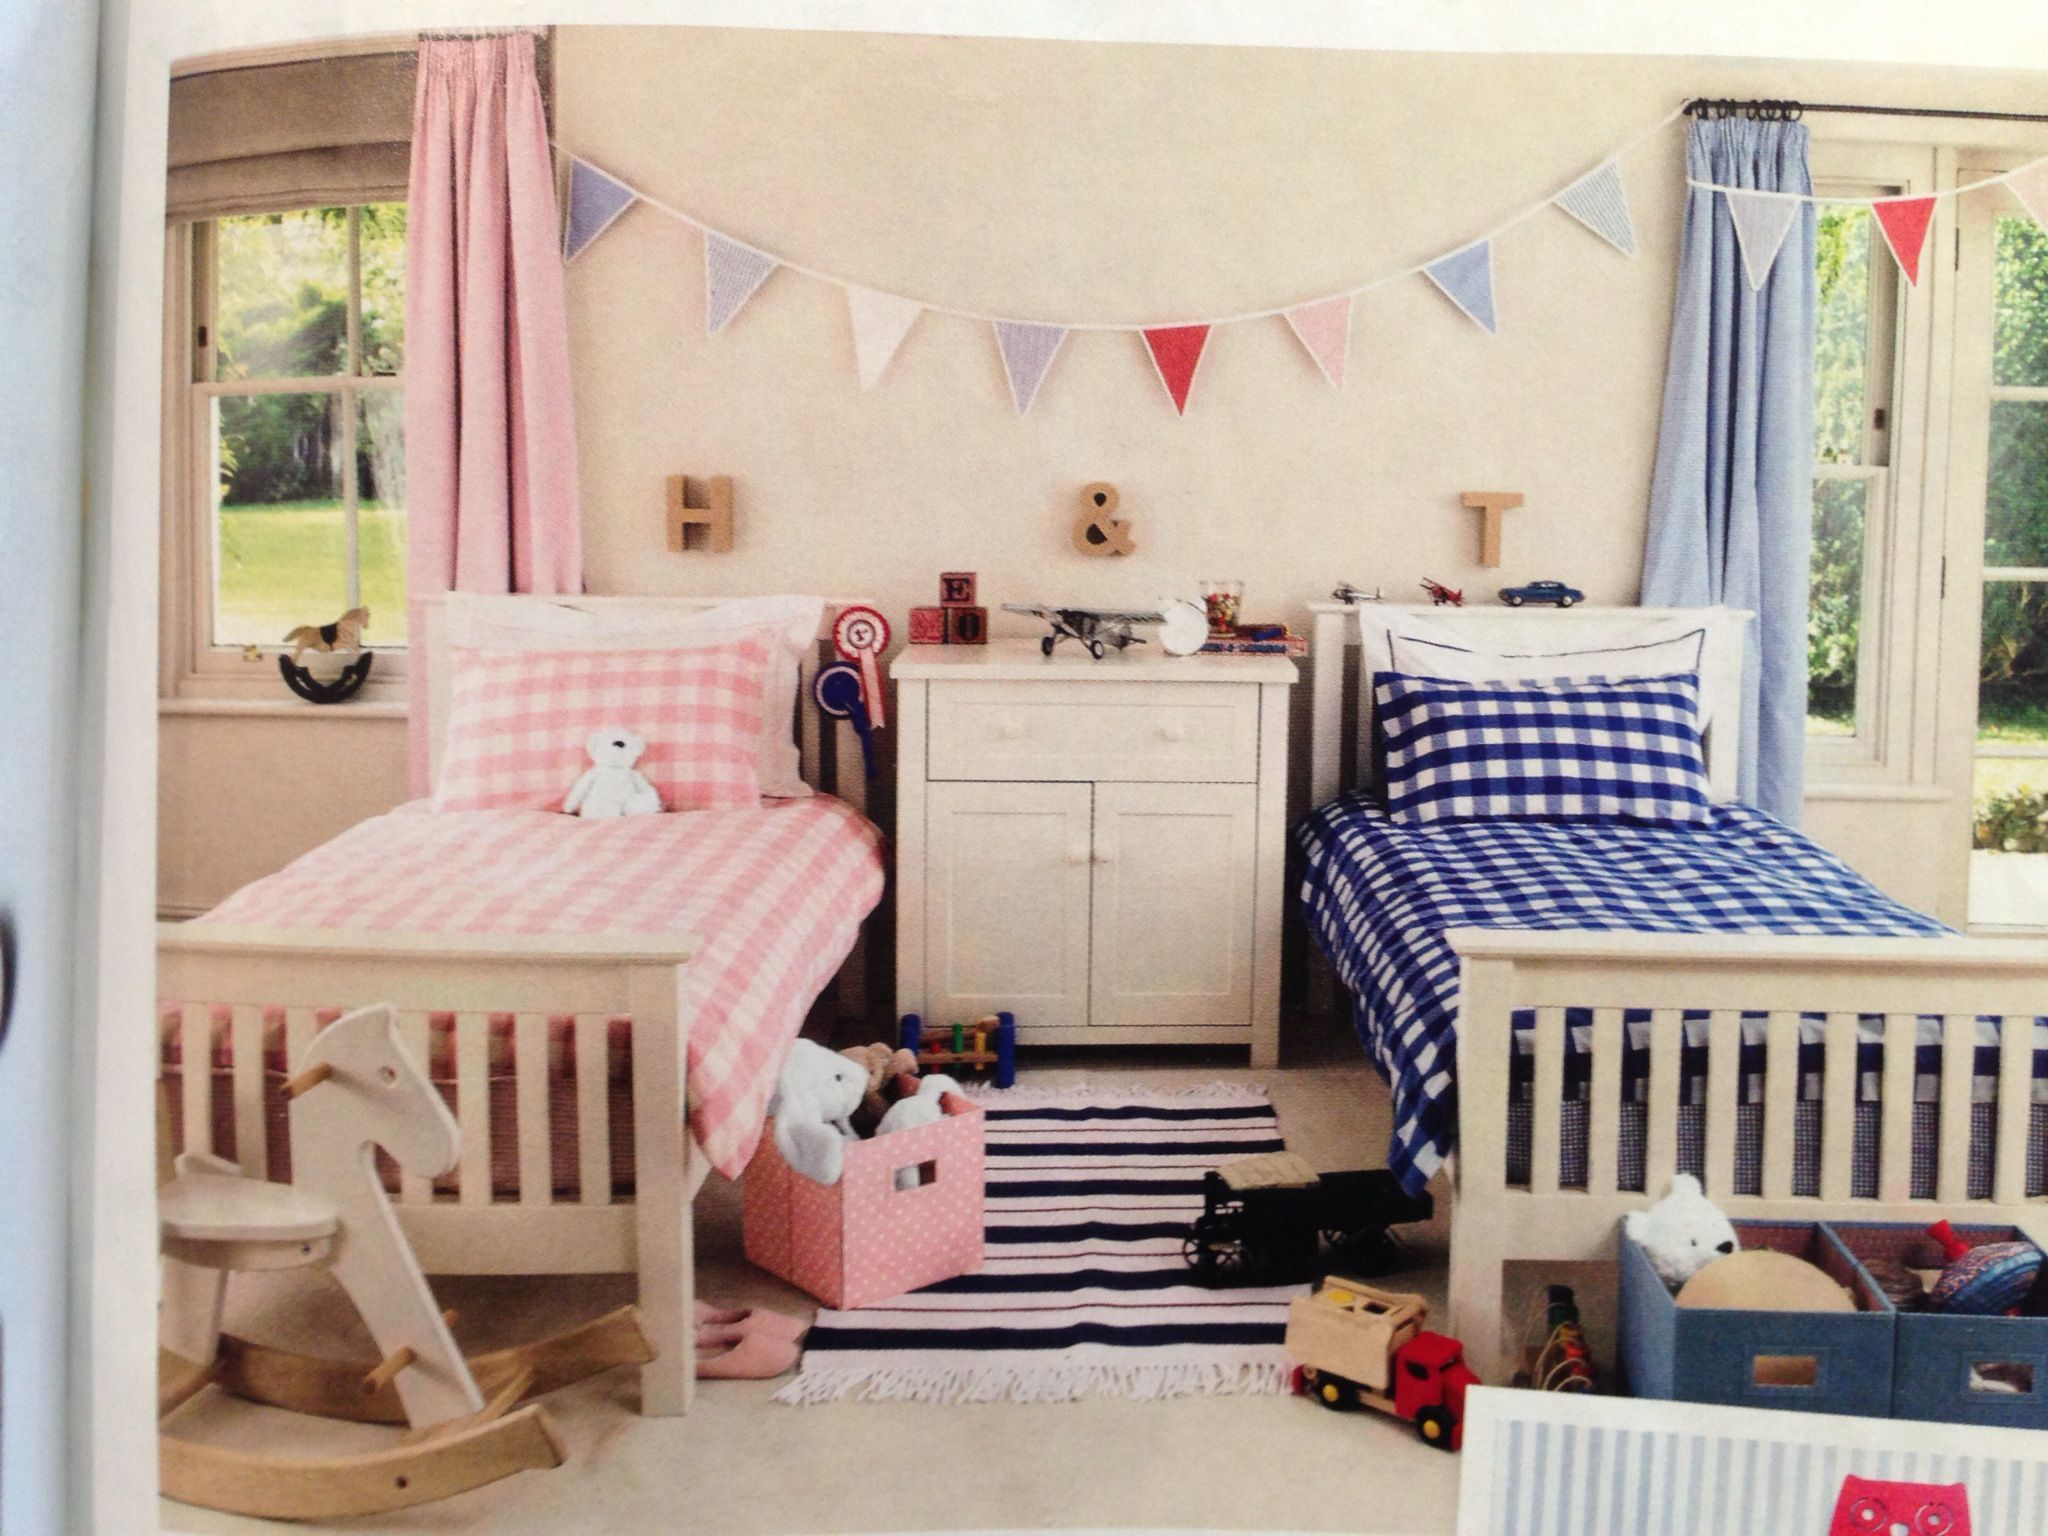 Bedroom designs for boys and girls - A Shared Bedroom For A Boy And A Girl Inspiration For Handmade Crochet Bunting